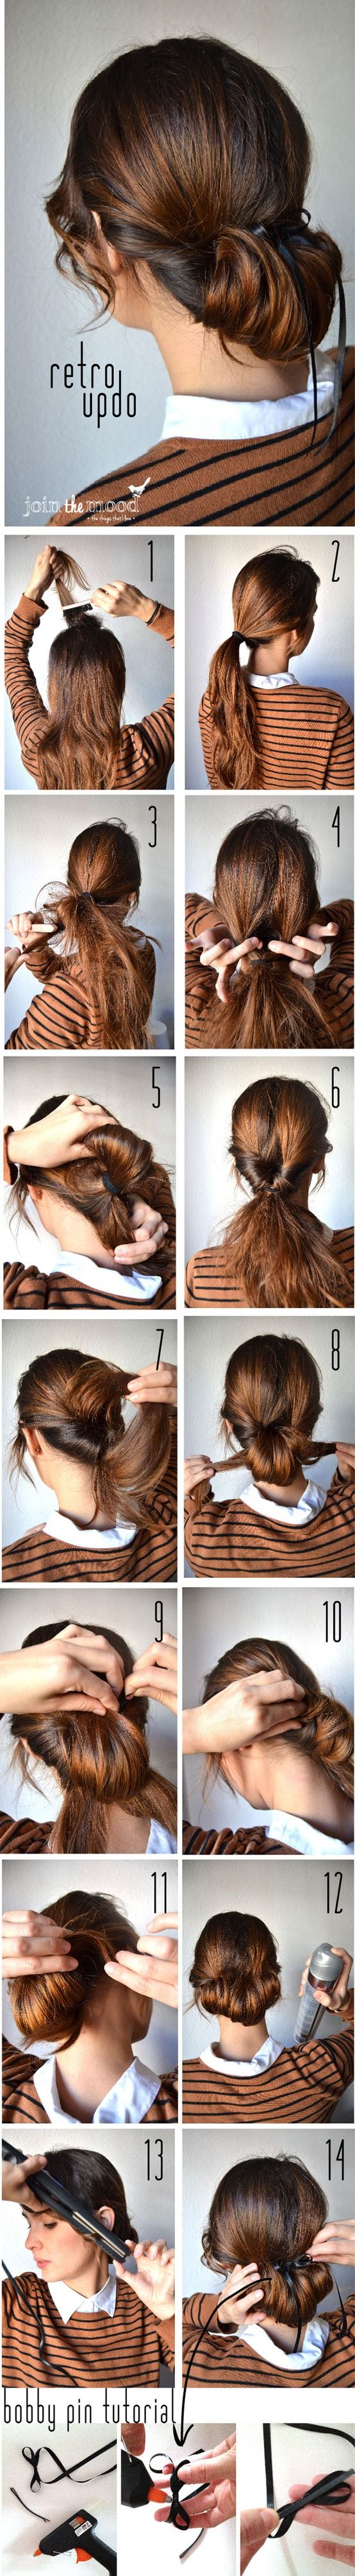 So cute and super easy hair style pinterest retro updo